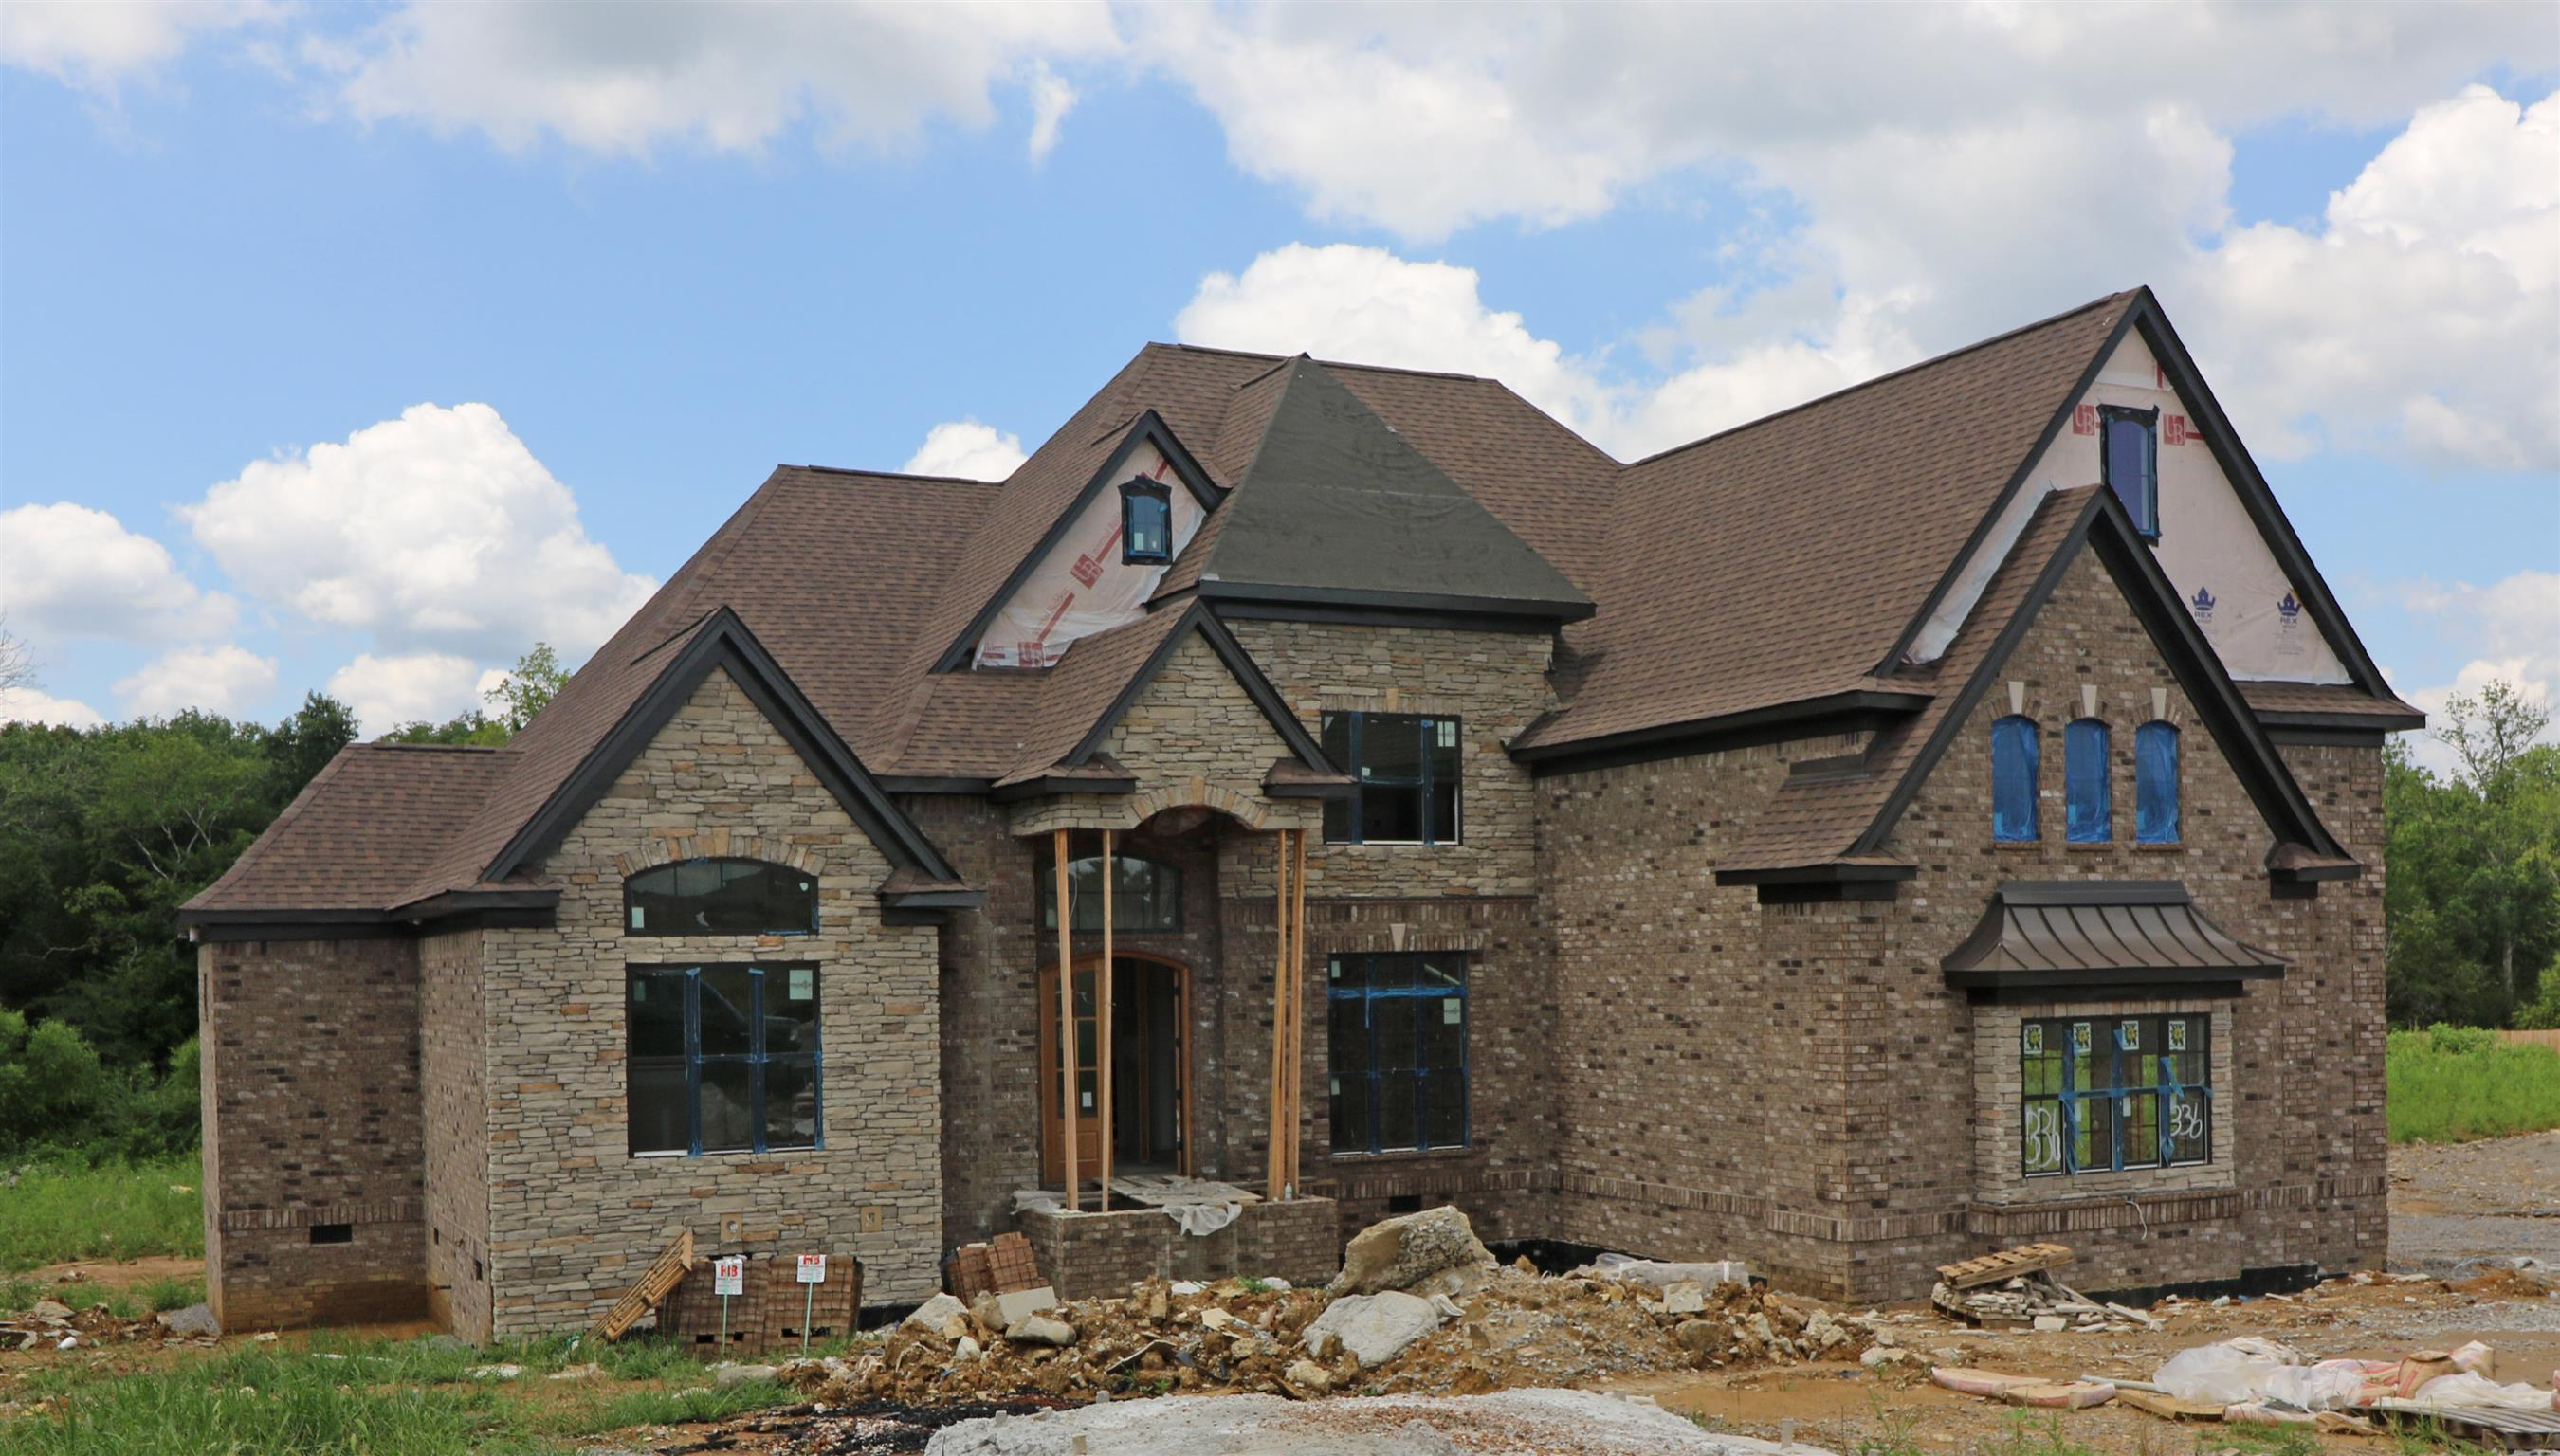 $789,900 - 4Br/5Ba -  for Sale in Wright Farms Sec. 5a, Mount Juliet